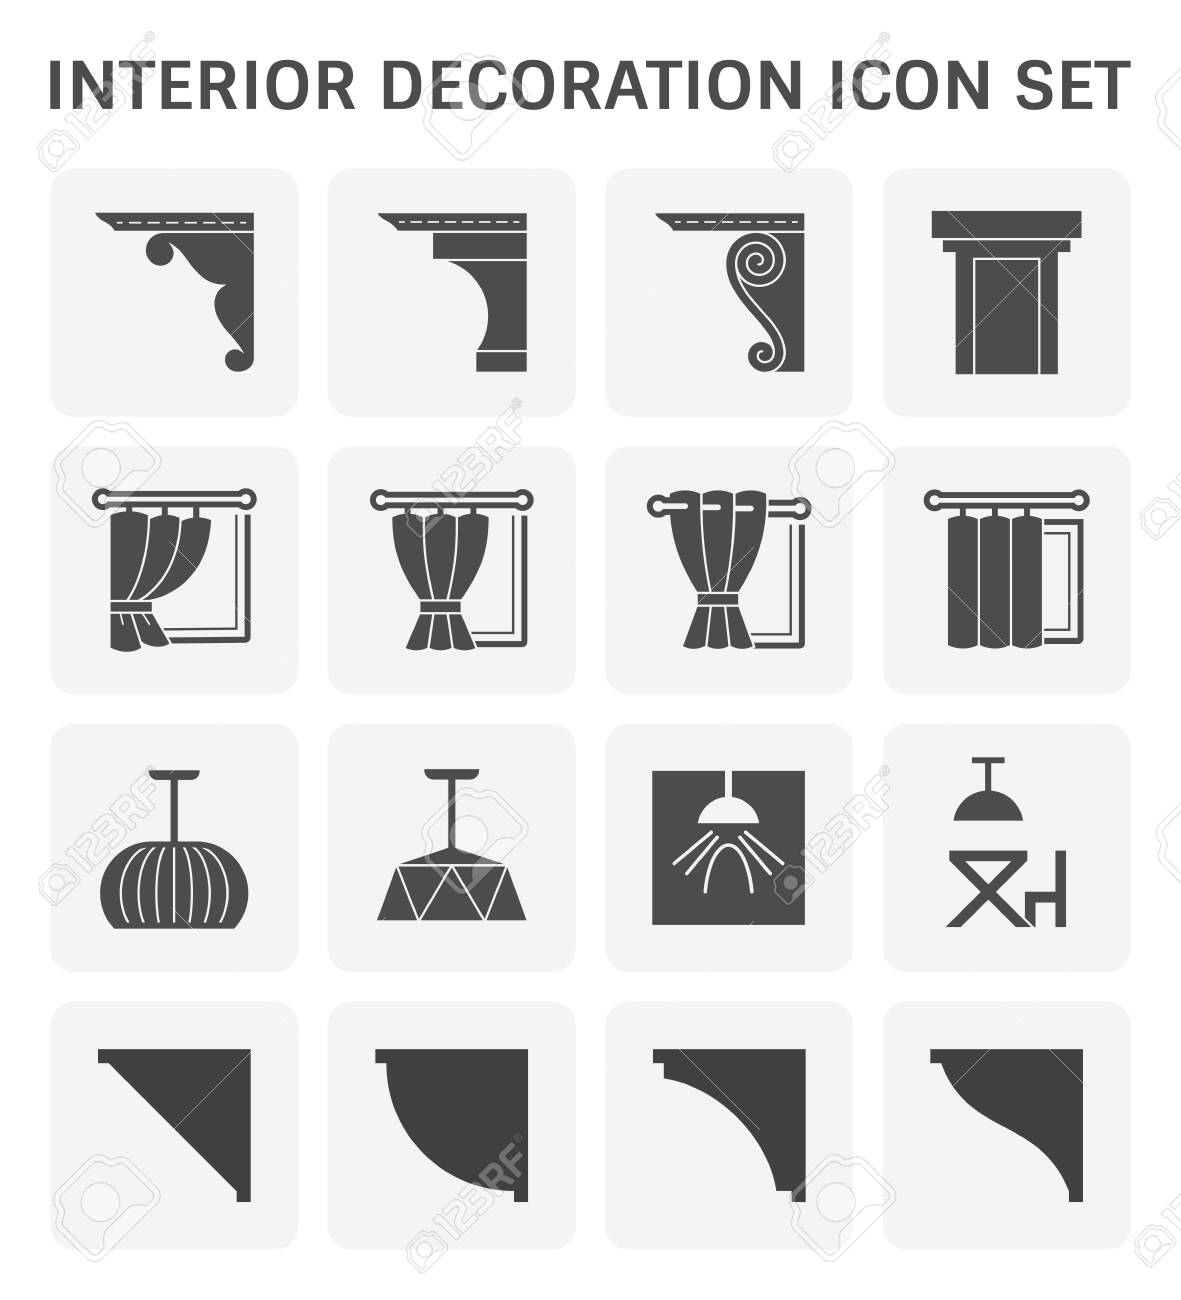 Interior and decoration material icon set design.